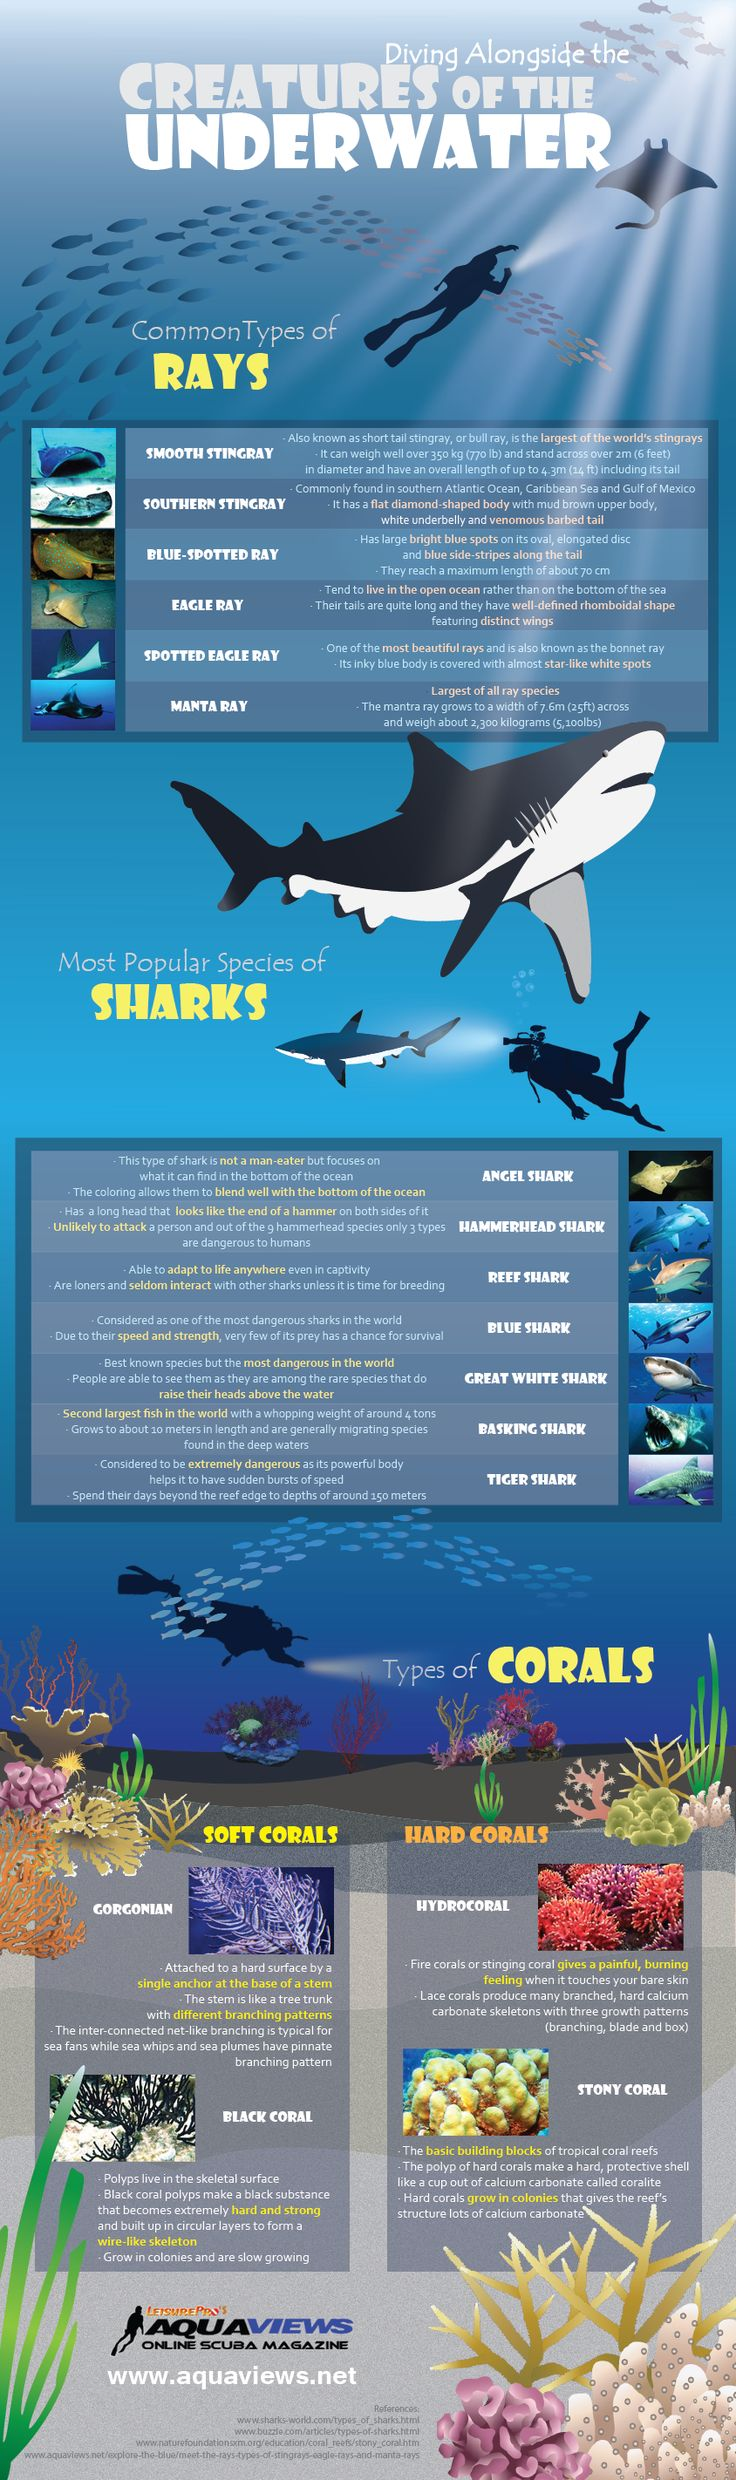 Take a look at a fun and engaging infographic highlighting popular types of rays, sharks and corals based on reader popularity.